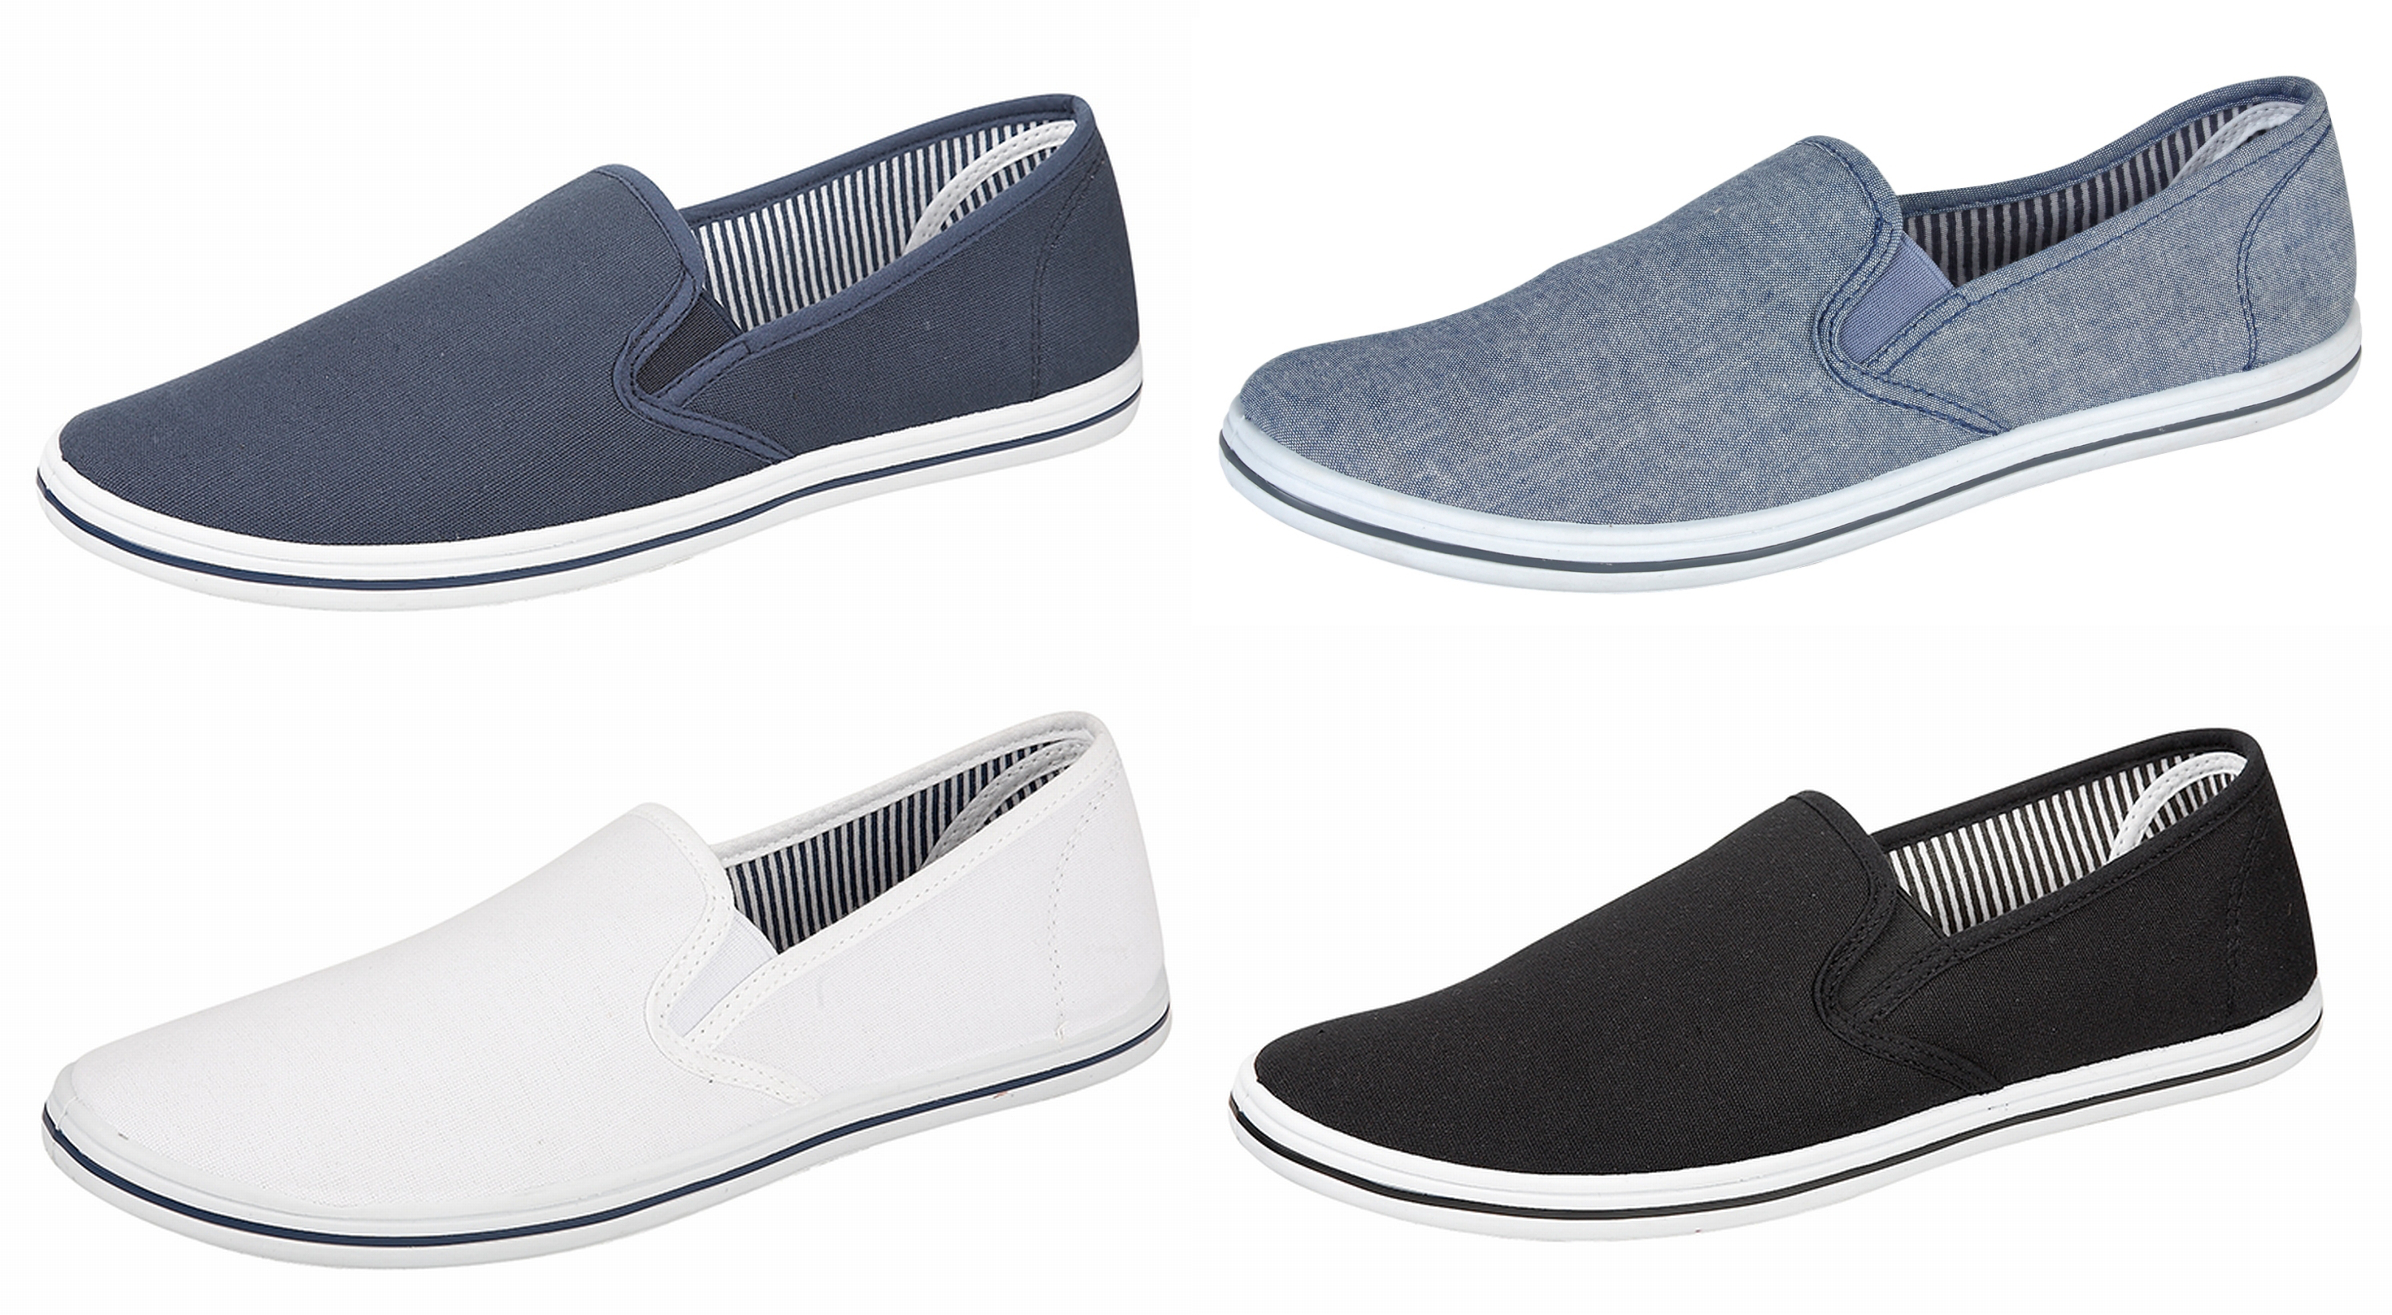 Mens Canvas Slip On Pumps Plimsolls Deck Shoes BLACK NAVY WHITE BLUE Size 7-12 Enlarged Preview